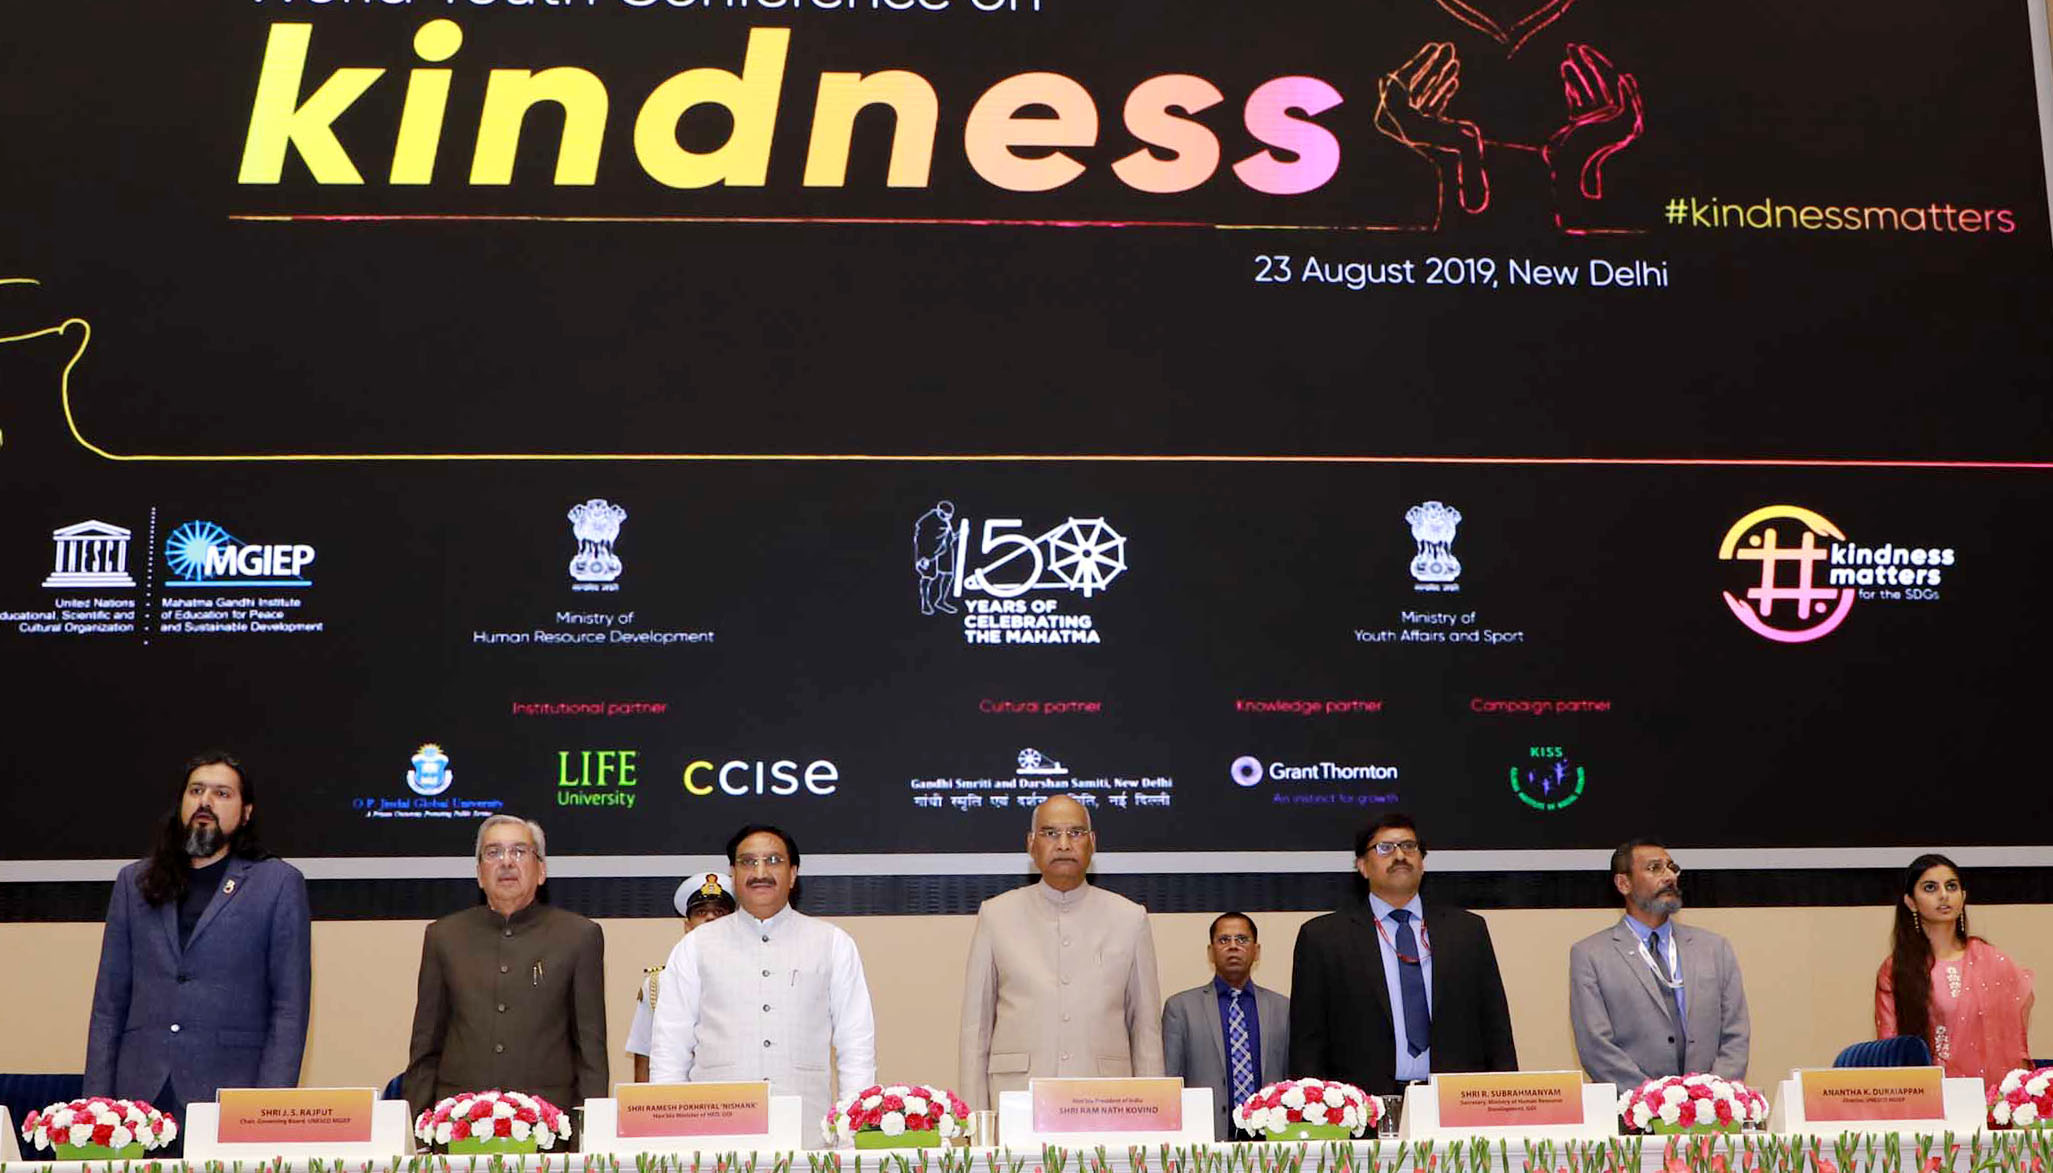 President of India inaugurates the First World Youth Conference on Kindness